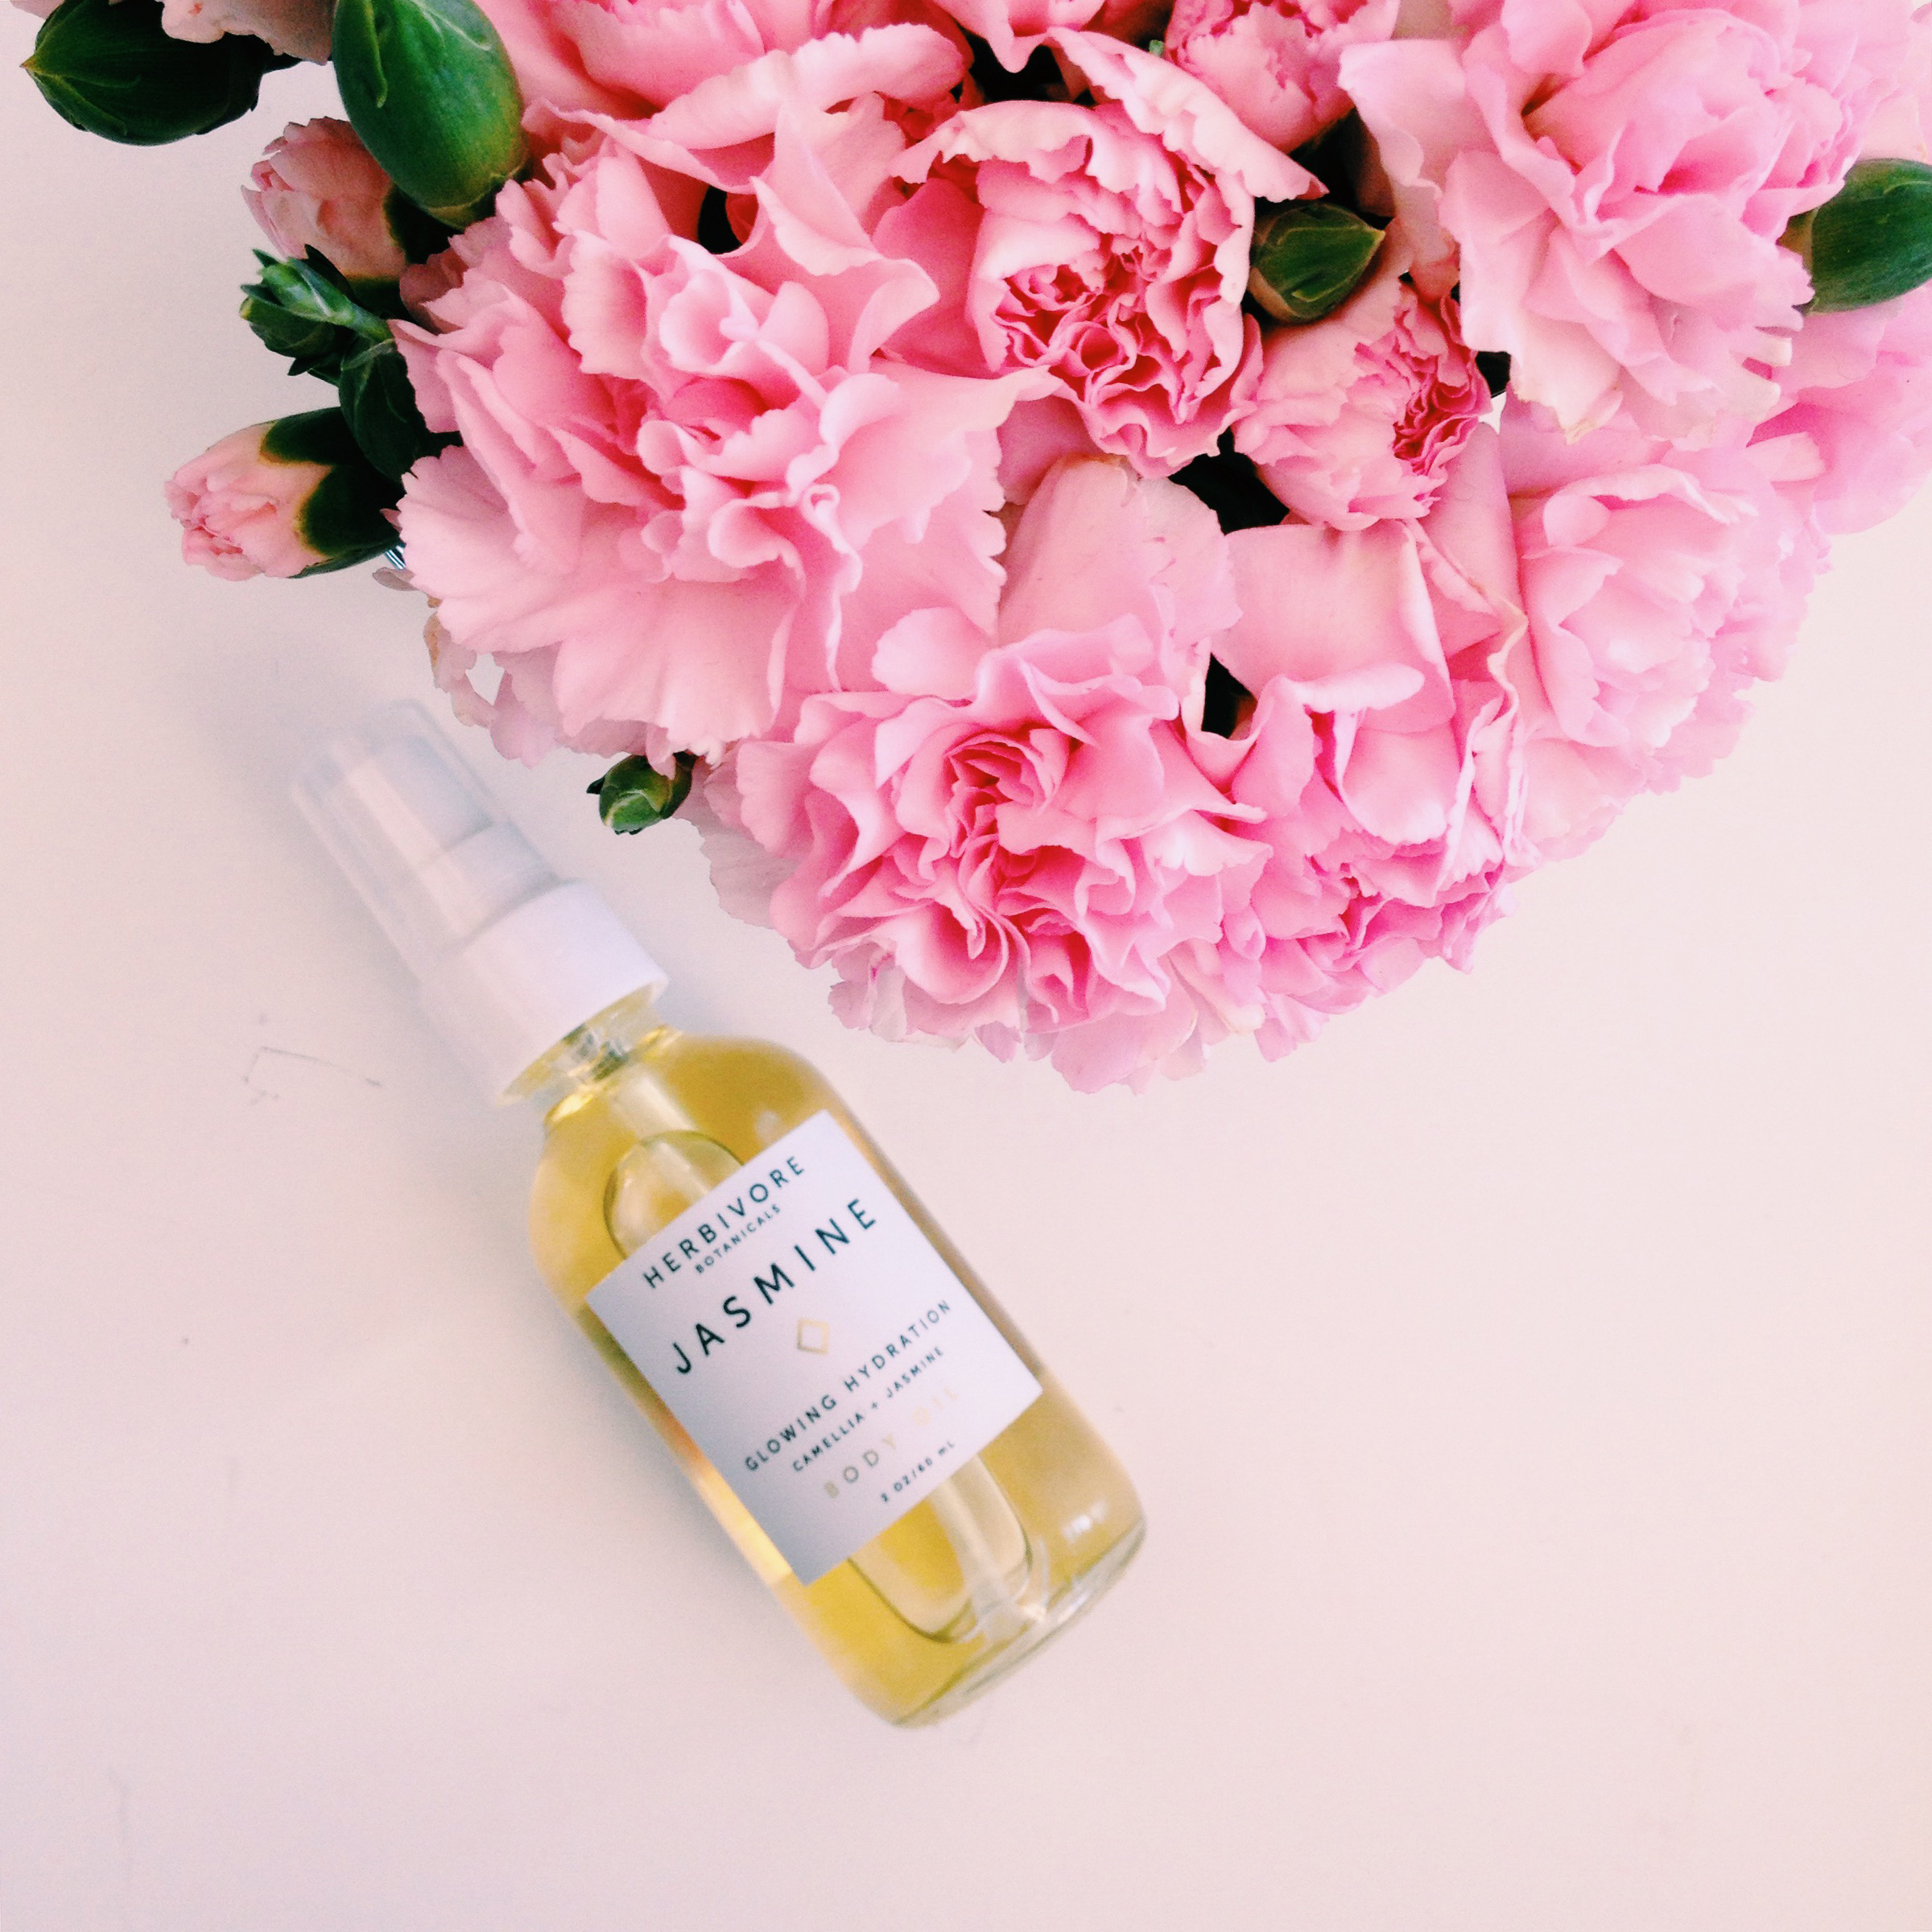 This  Jasmine Body Oil  from Herbivore Botanicals , makes the skin feel so smooth! Seriously, I didn't know what hydration was until this body oil showed me what's what. If you catch me smelling my forearm on the train, it's because I'm addicted to this Jasmine scent.